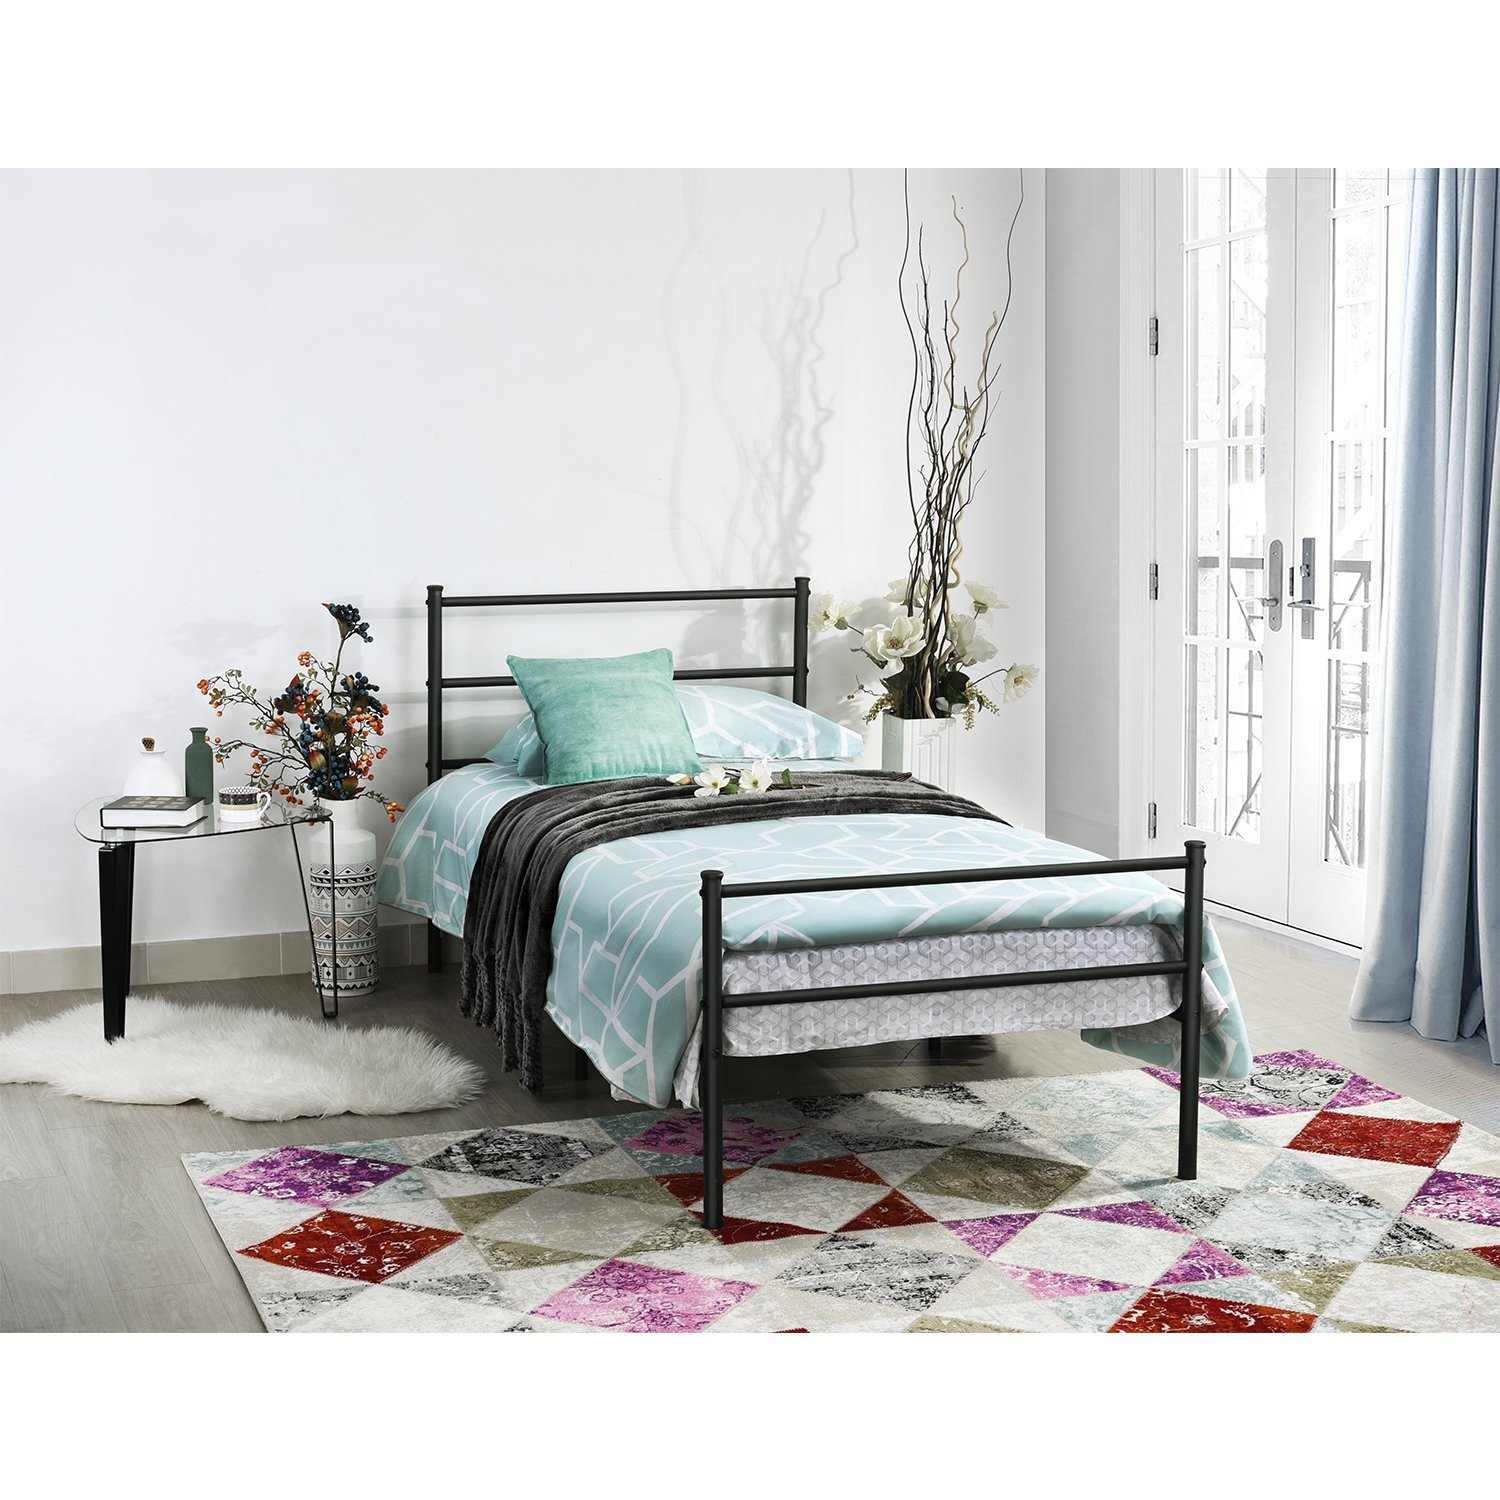 Metal Bed Frame Twin Mattress Set, Bed & Mattress (Weekly Special ...